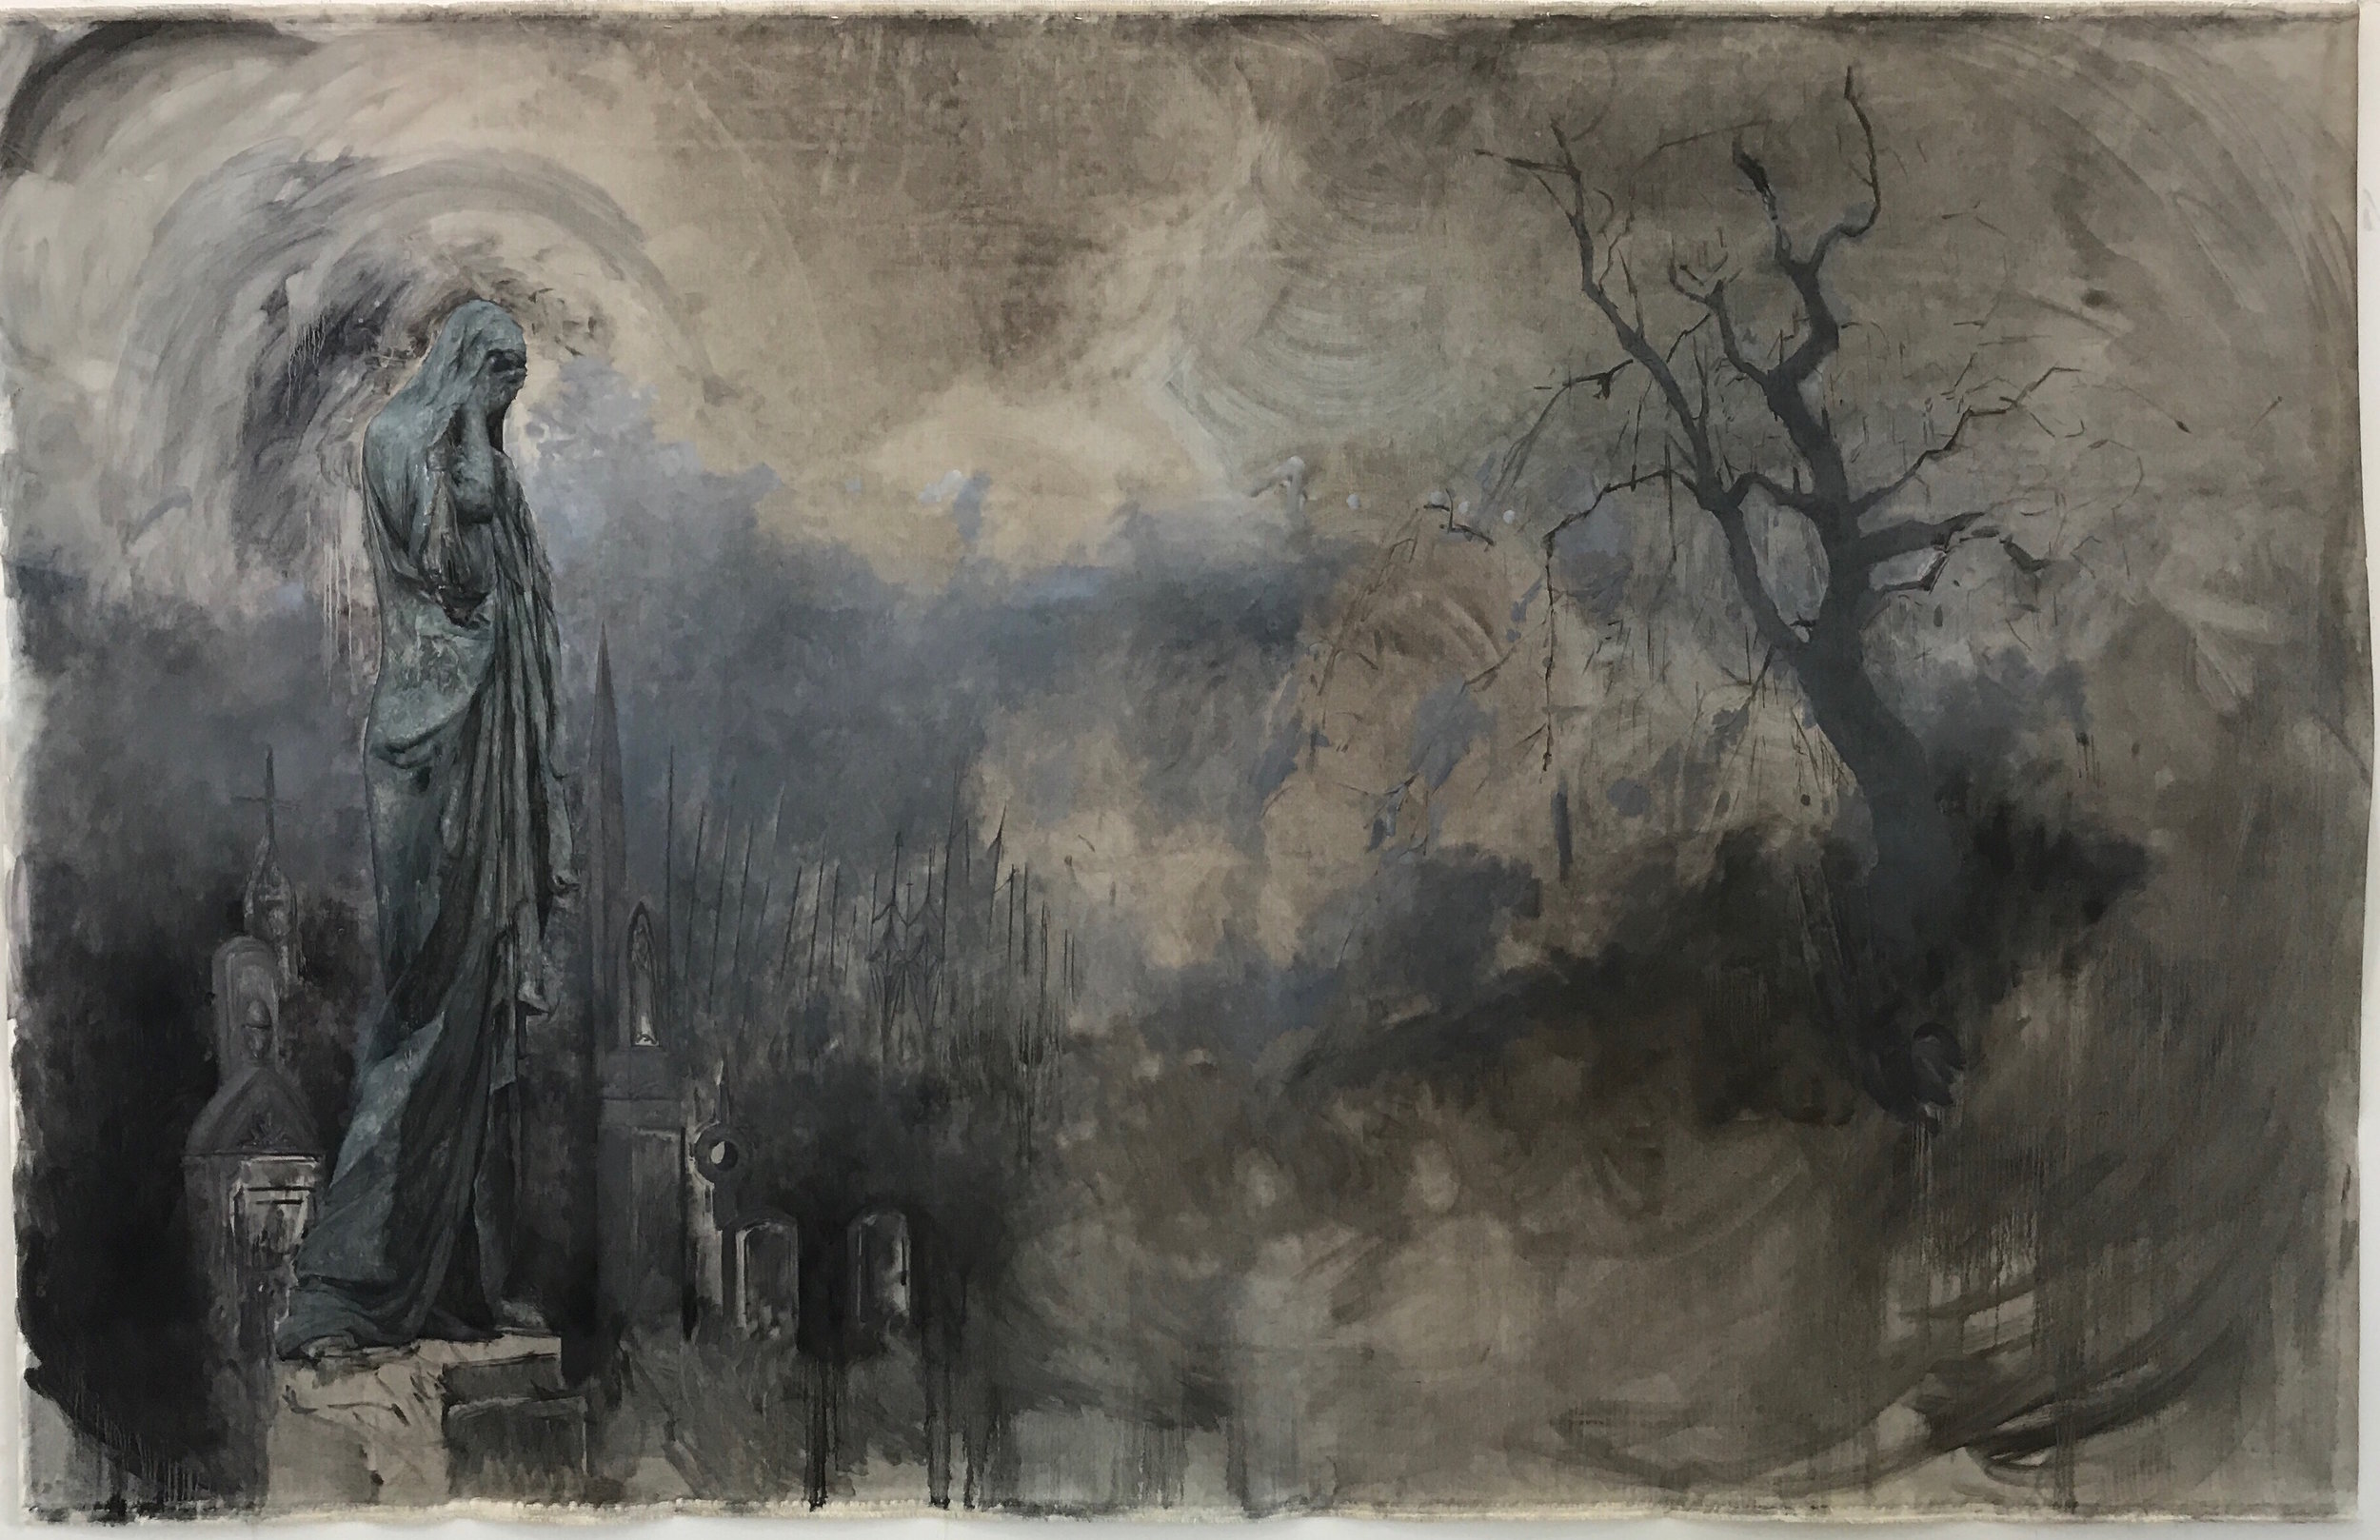 """""""Chapter 1: In the Cemetery,"""" oil on linen, 127 x 79 inches, 2017.""""  Photo Credit: Stefan Hagen"""